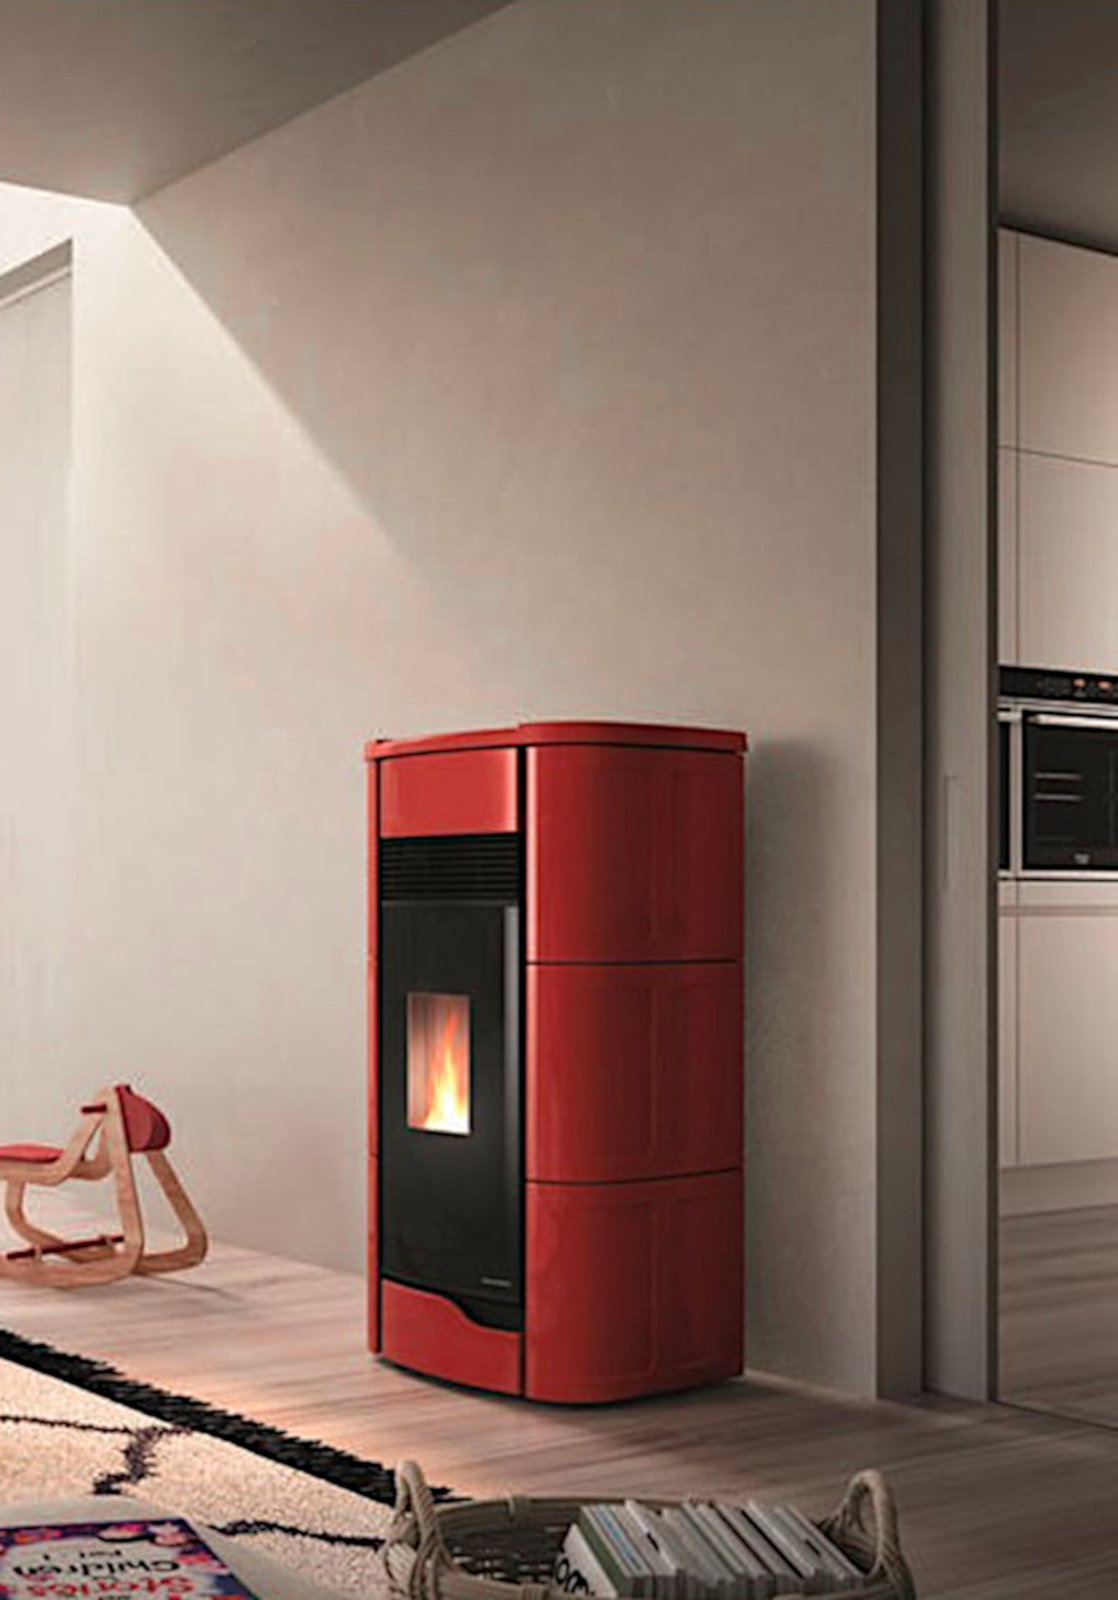 Stufa-a-pellet-Anna-9-12kW-canalizzabil